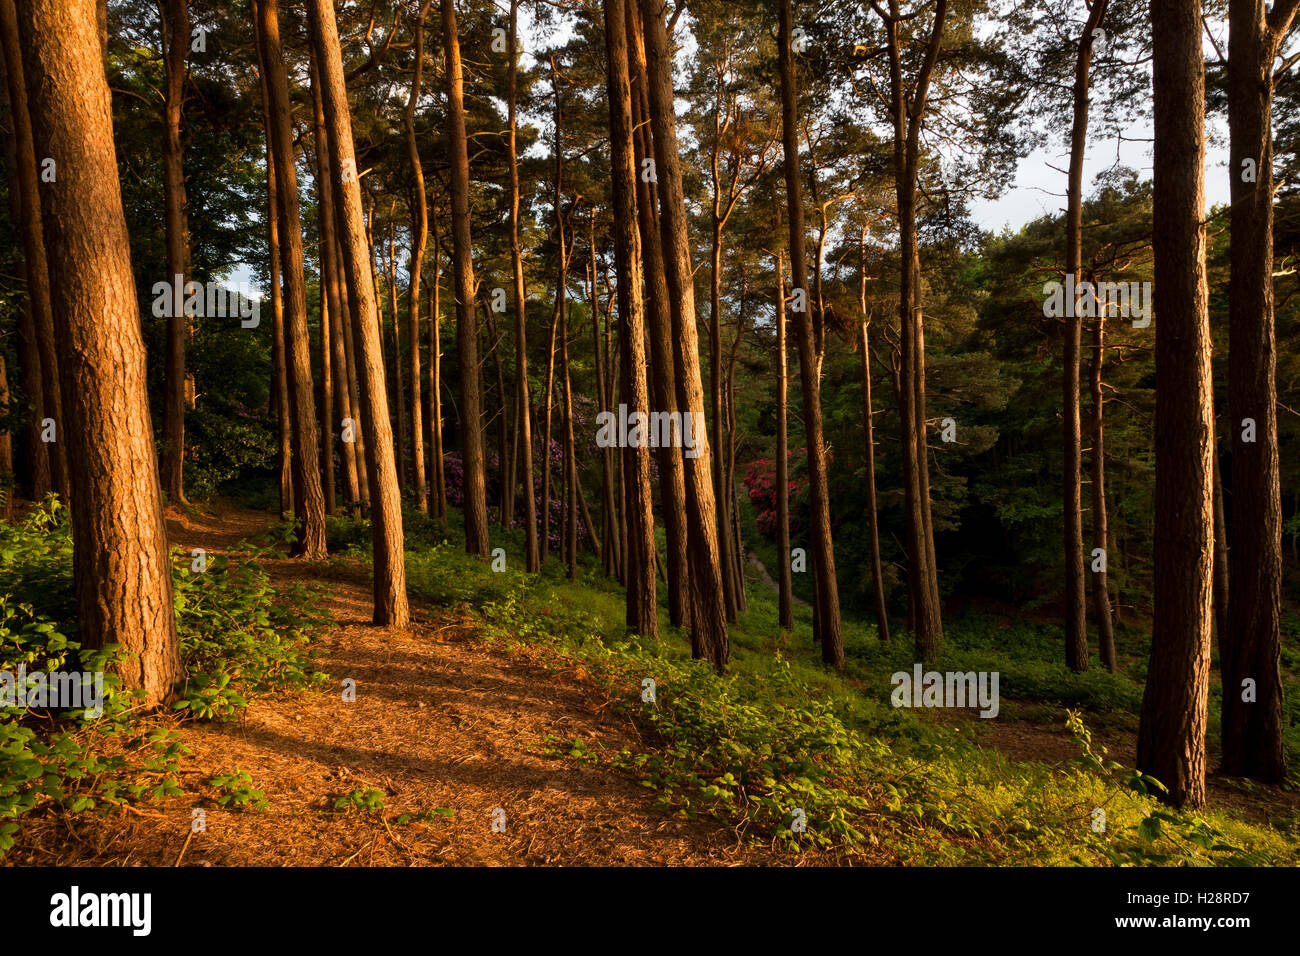 A path leading through tall conifer trees - Stock Image